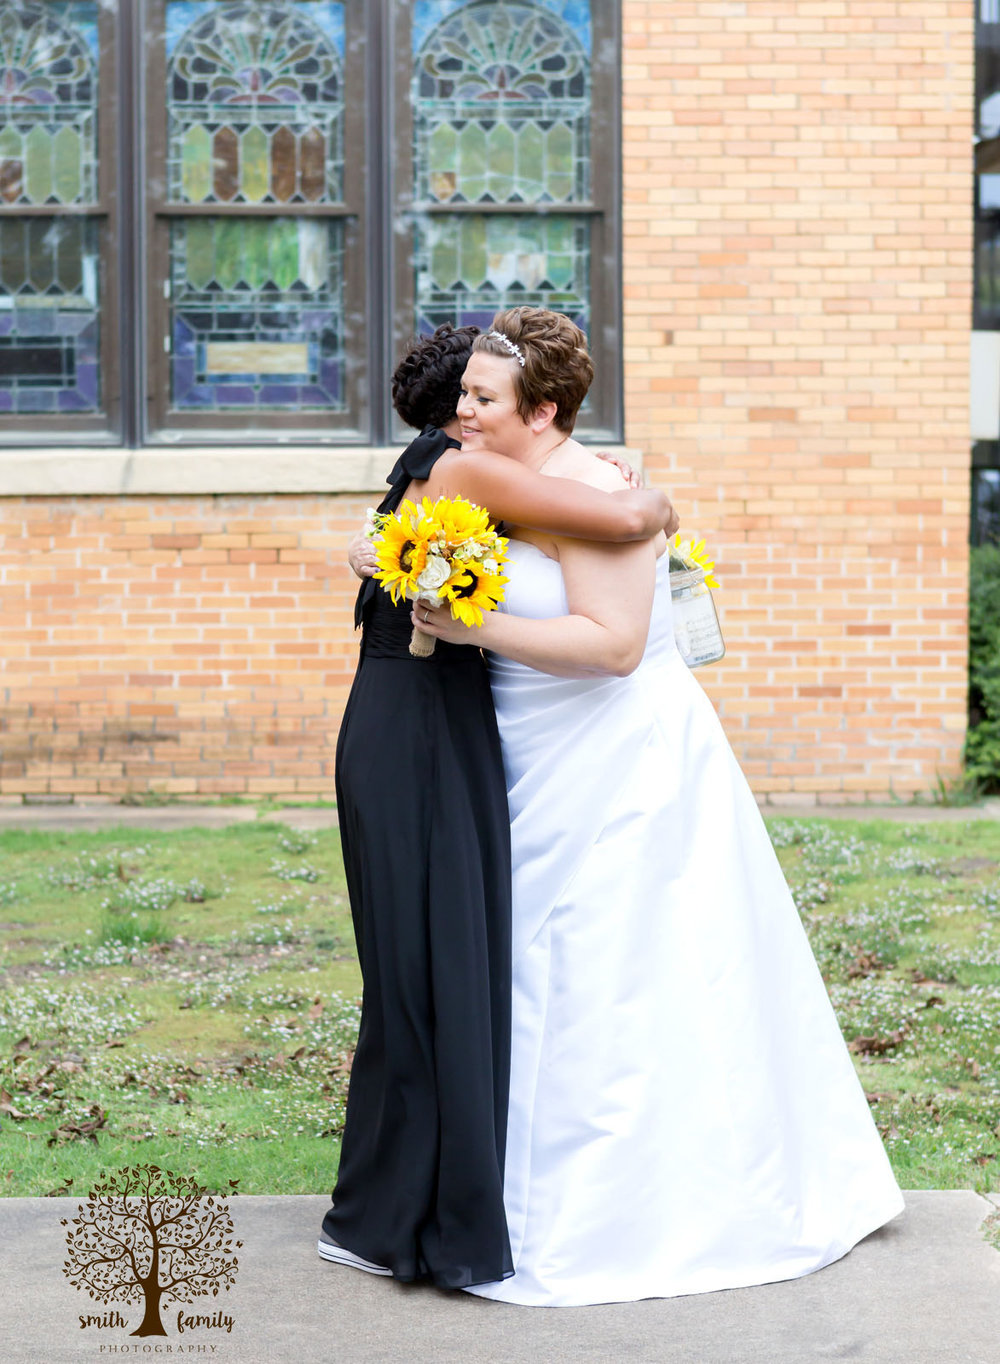 mother_daughter_blended_family_wedding